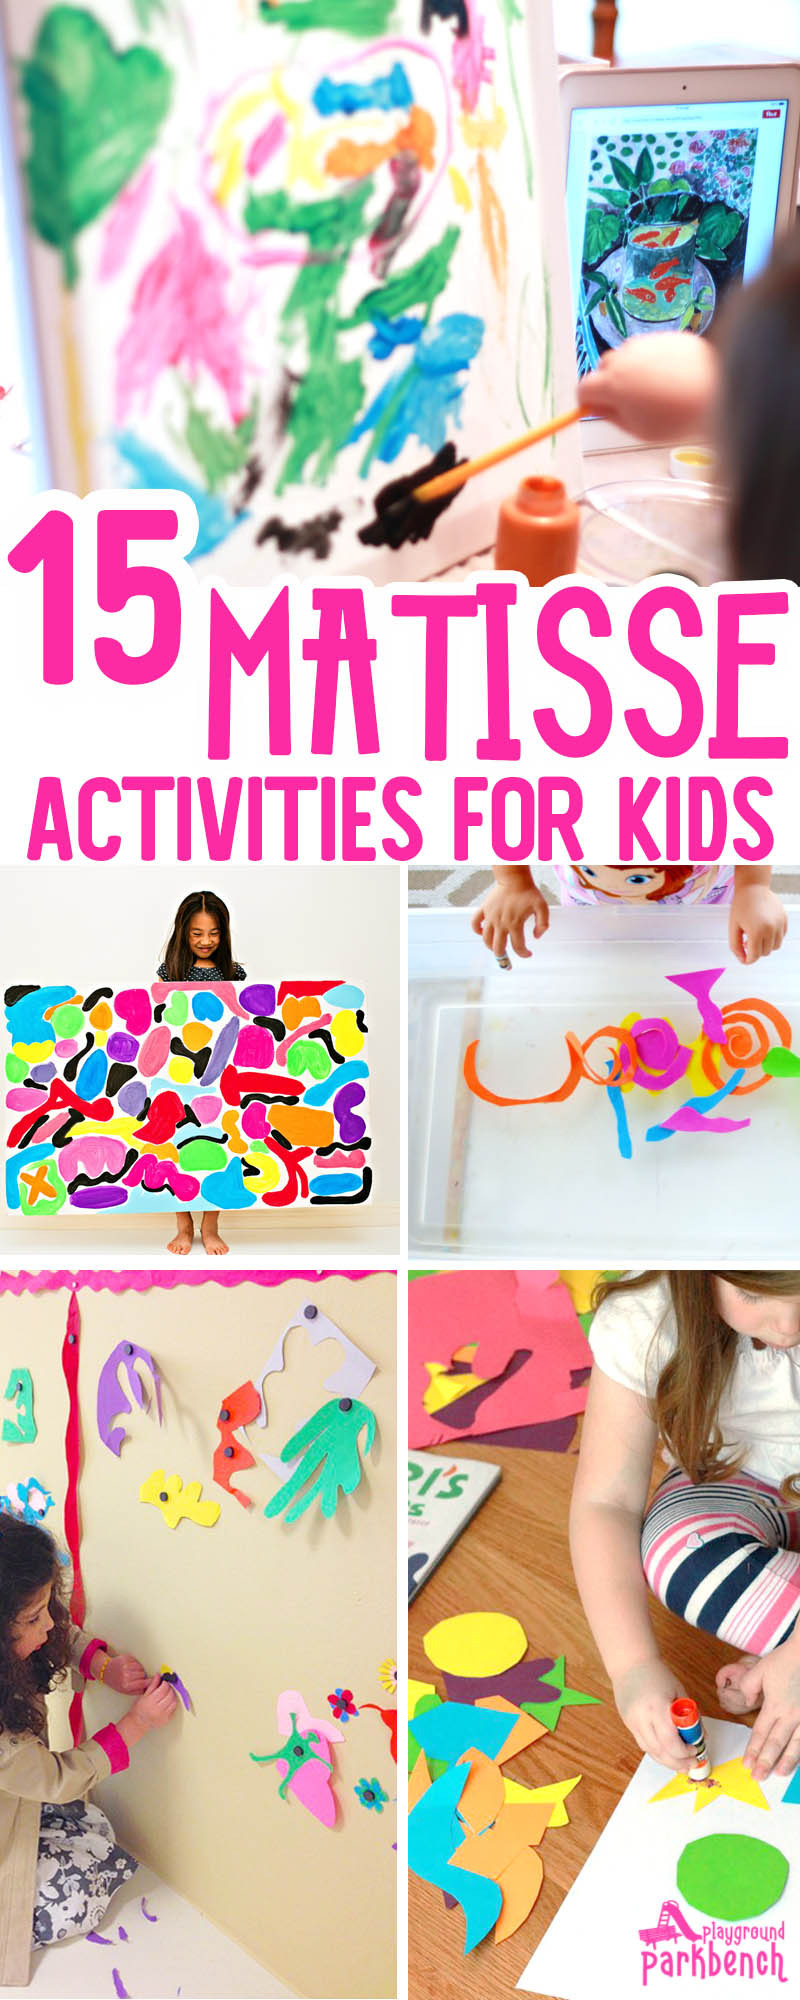 Fun Art Activities For Kids  15 Vibrant Matisse Art Projects for Kids That Really Wow